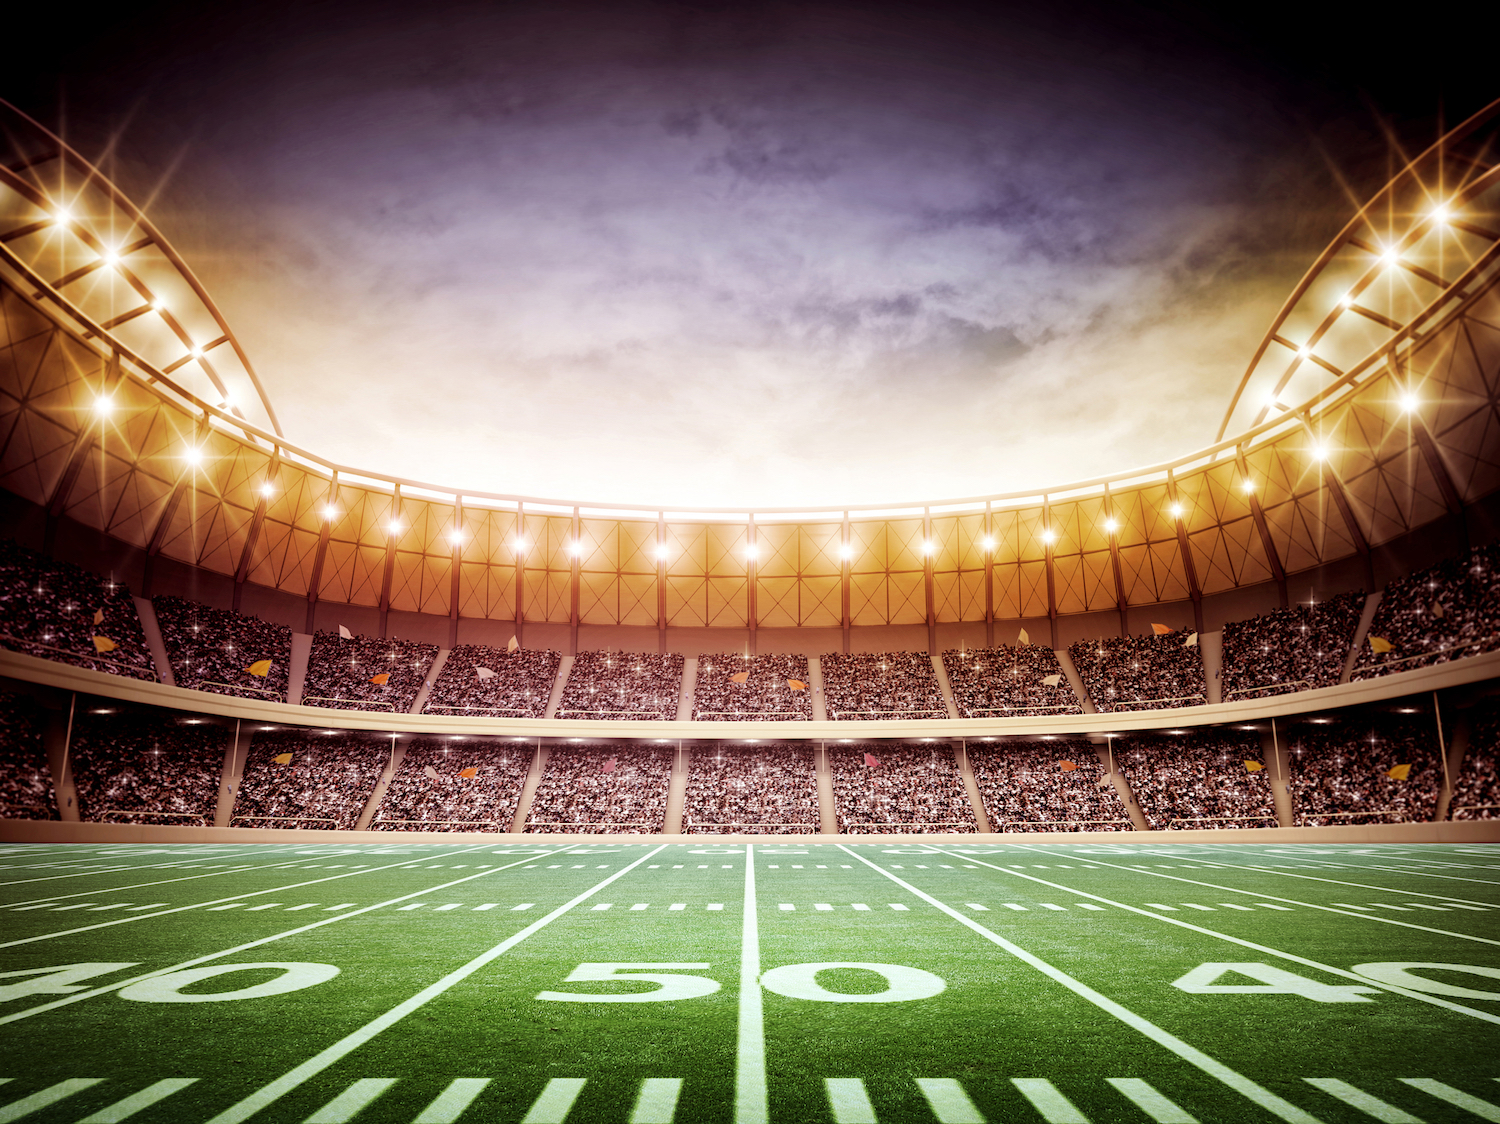 Researchers have demonstrated that Twitter posts can help predict the outcome of sports games when combined with betting prices.